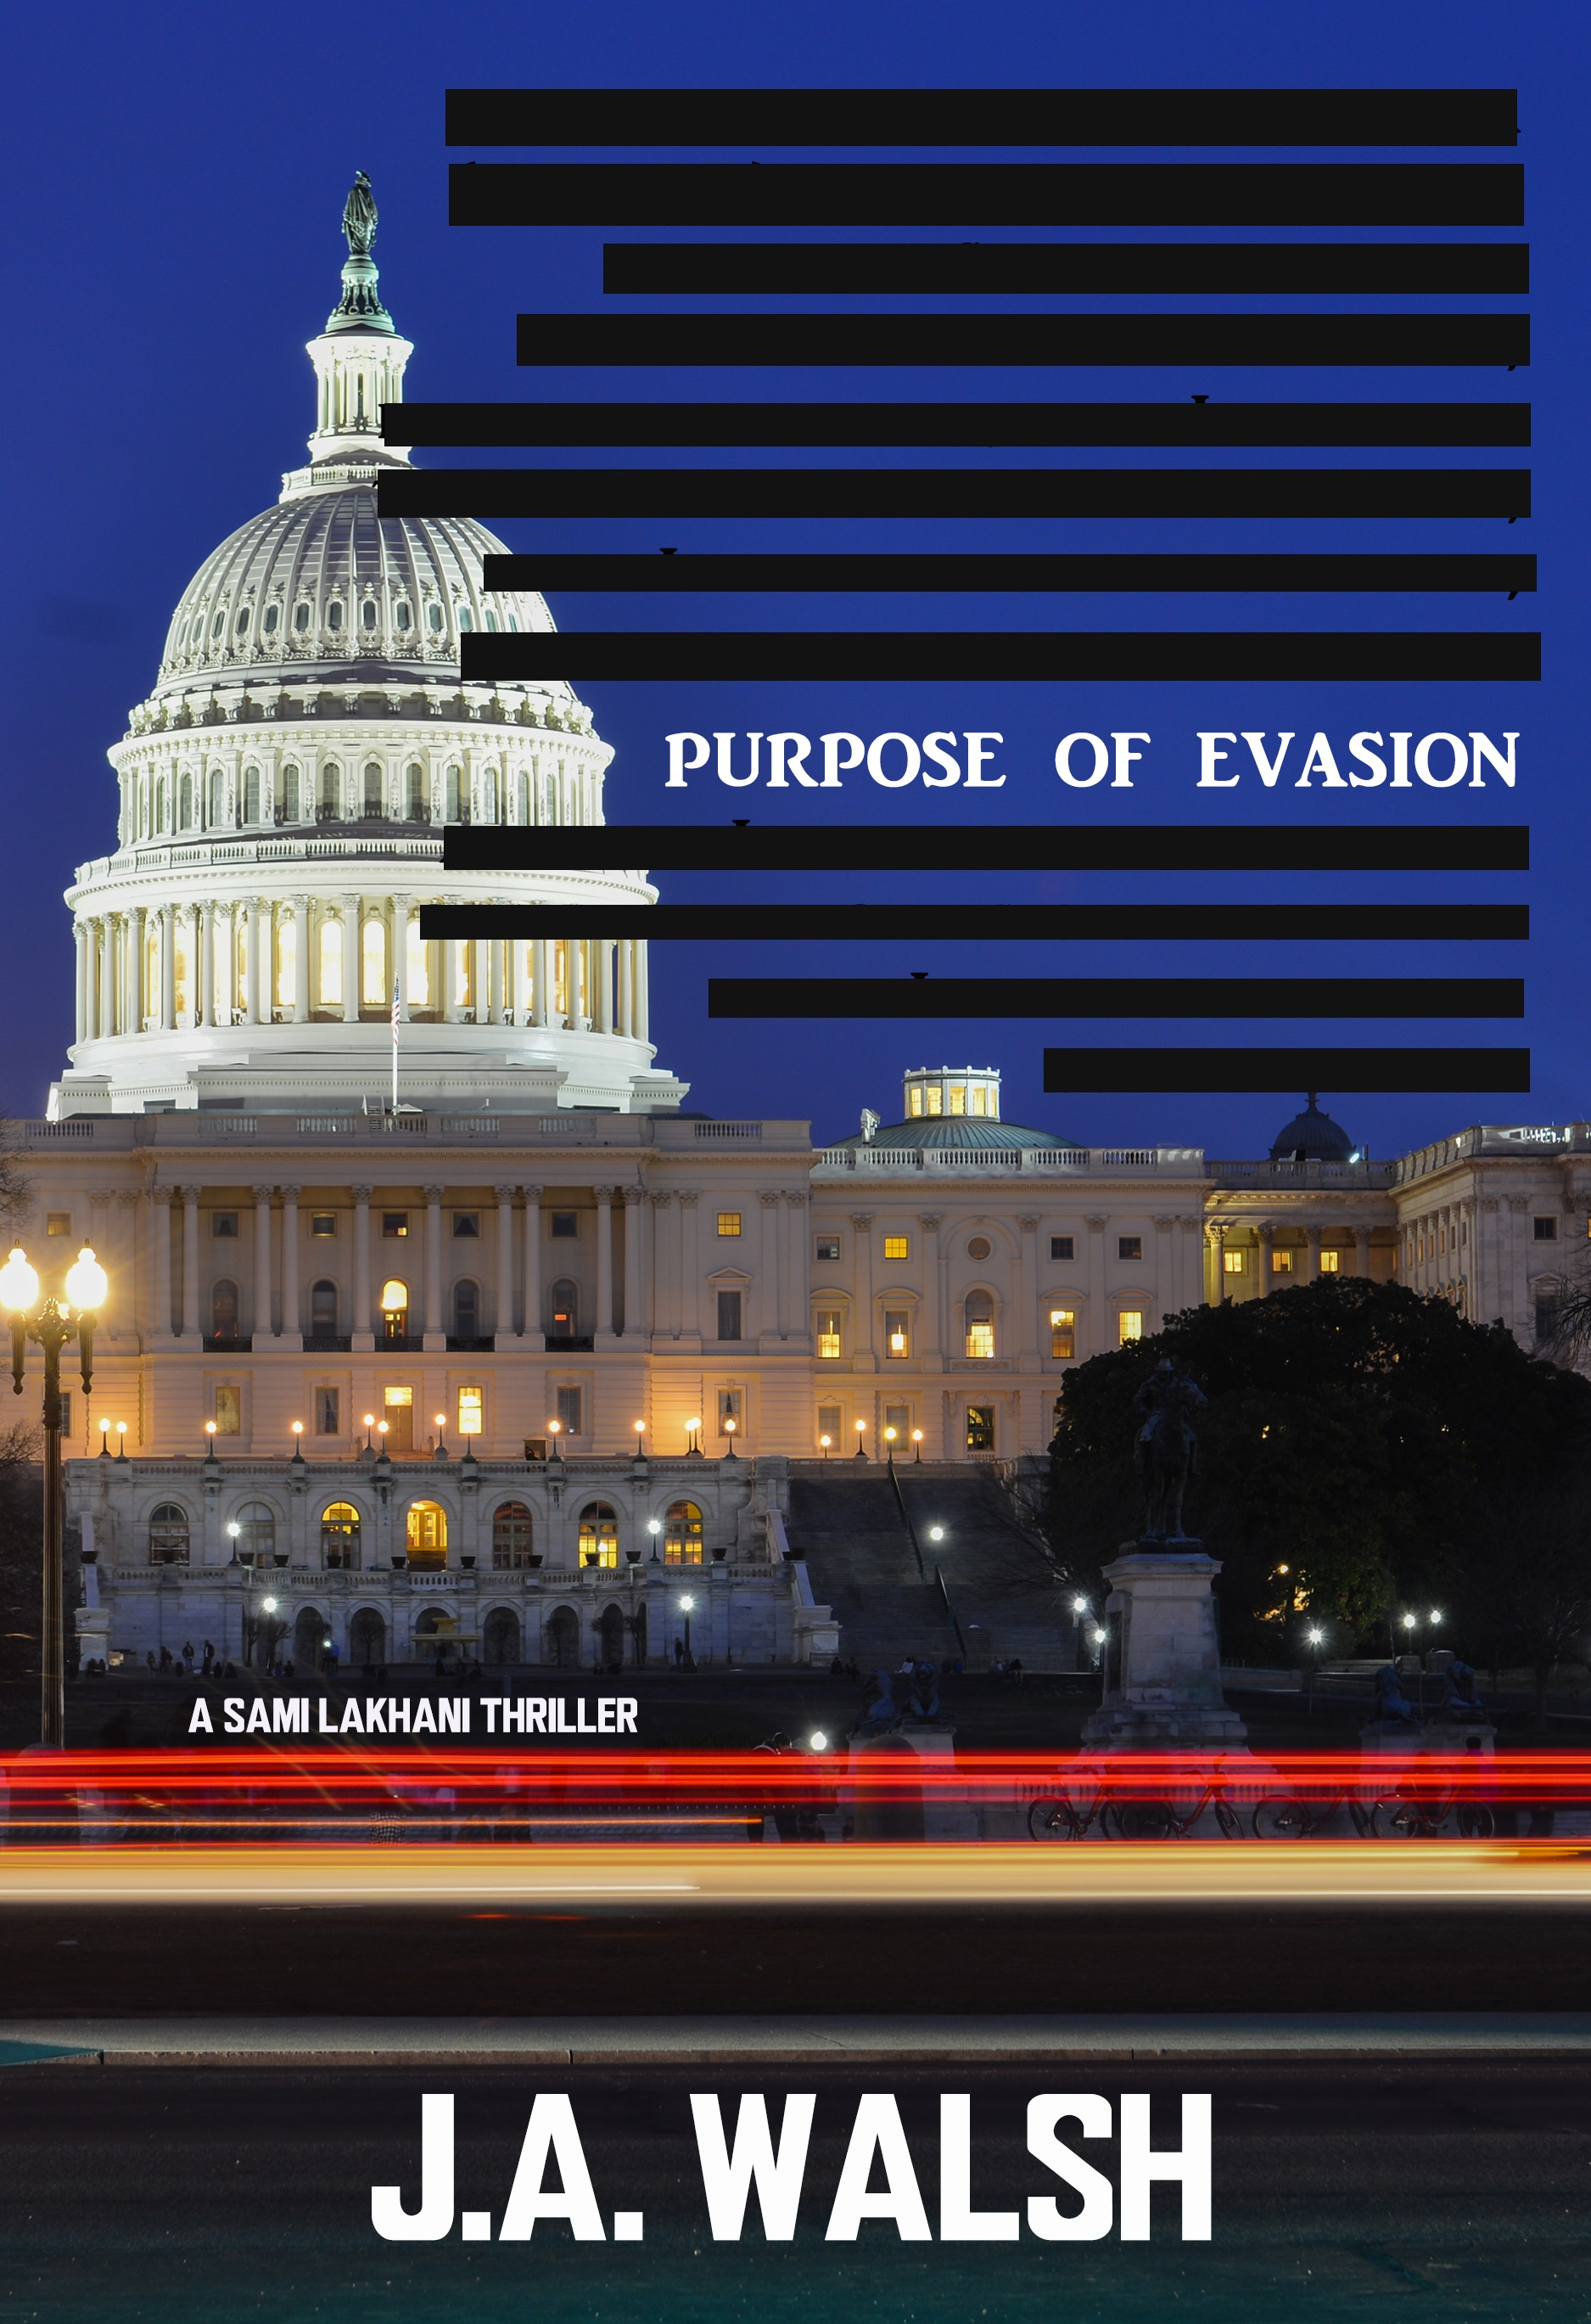 J.A. Walsh - Purpose of Evasion.jpg